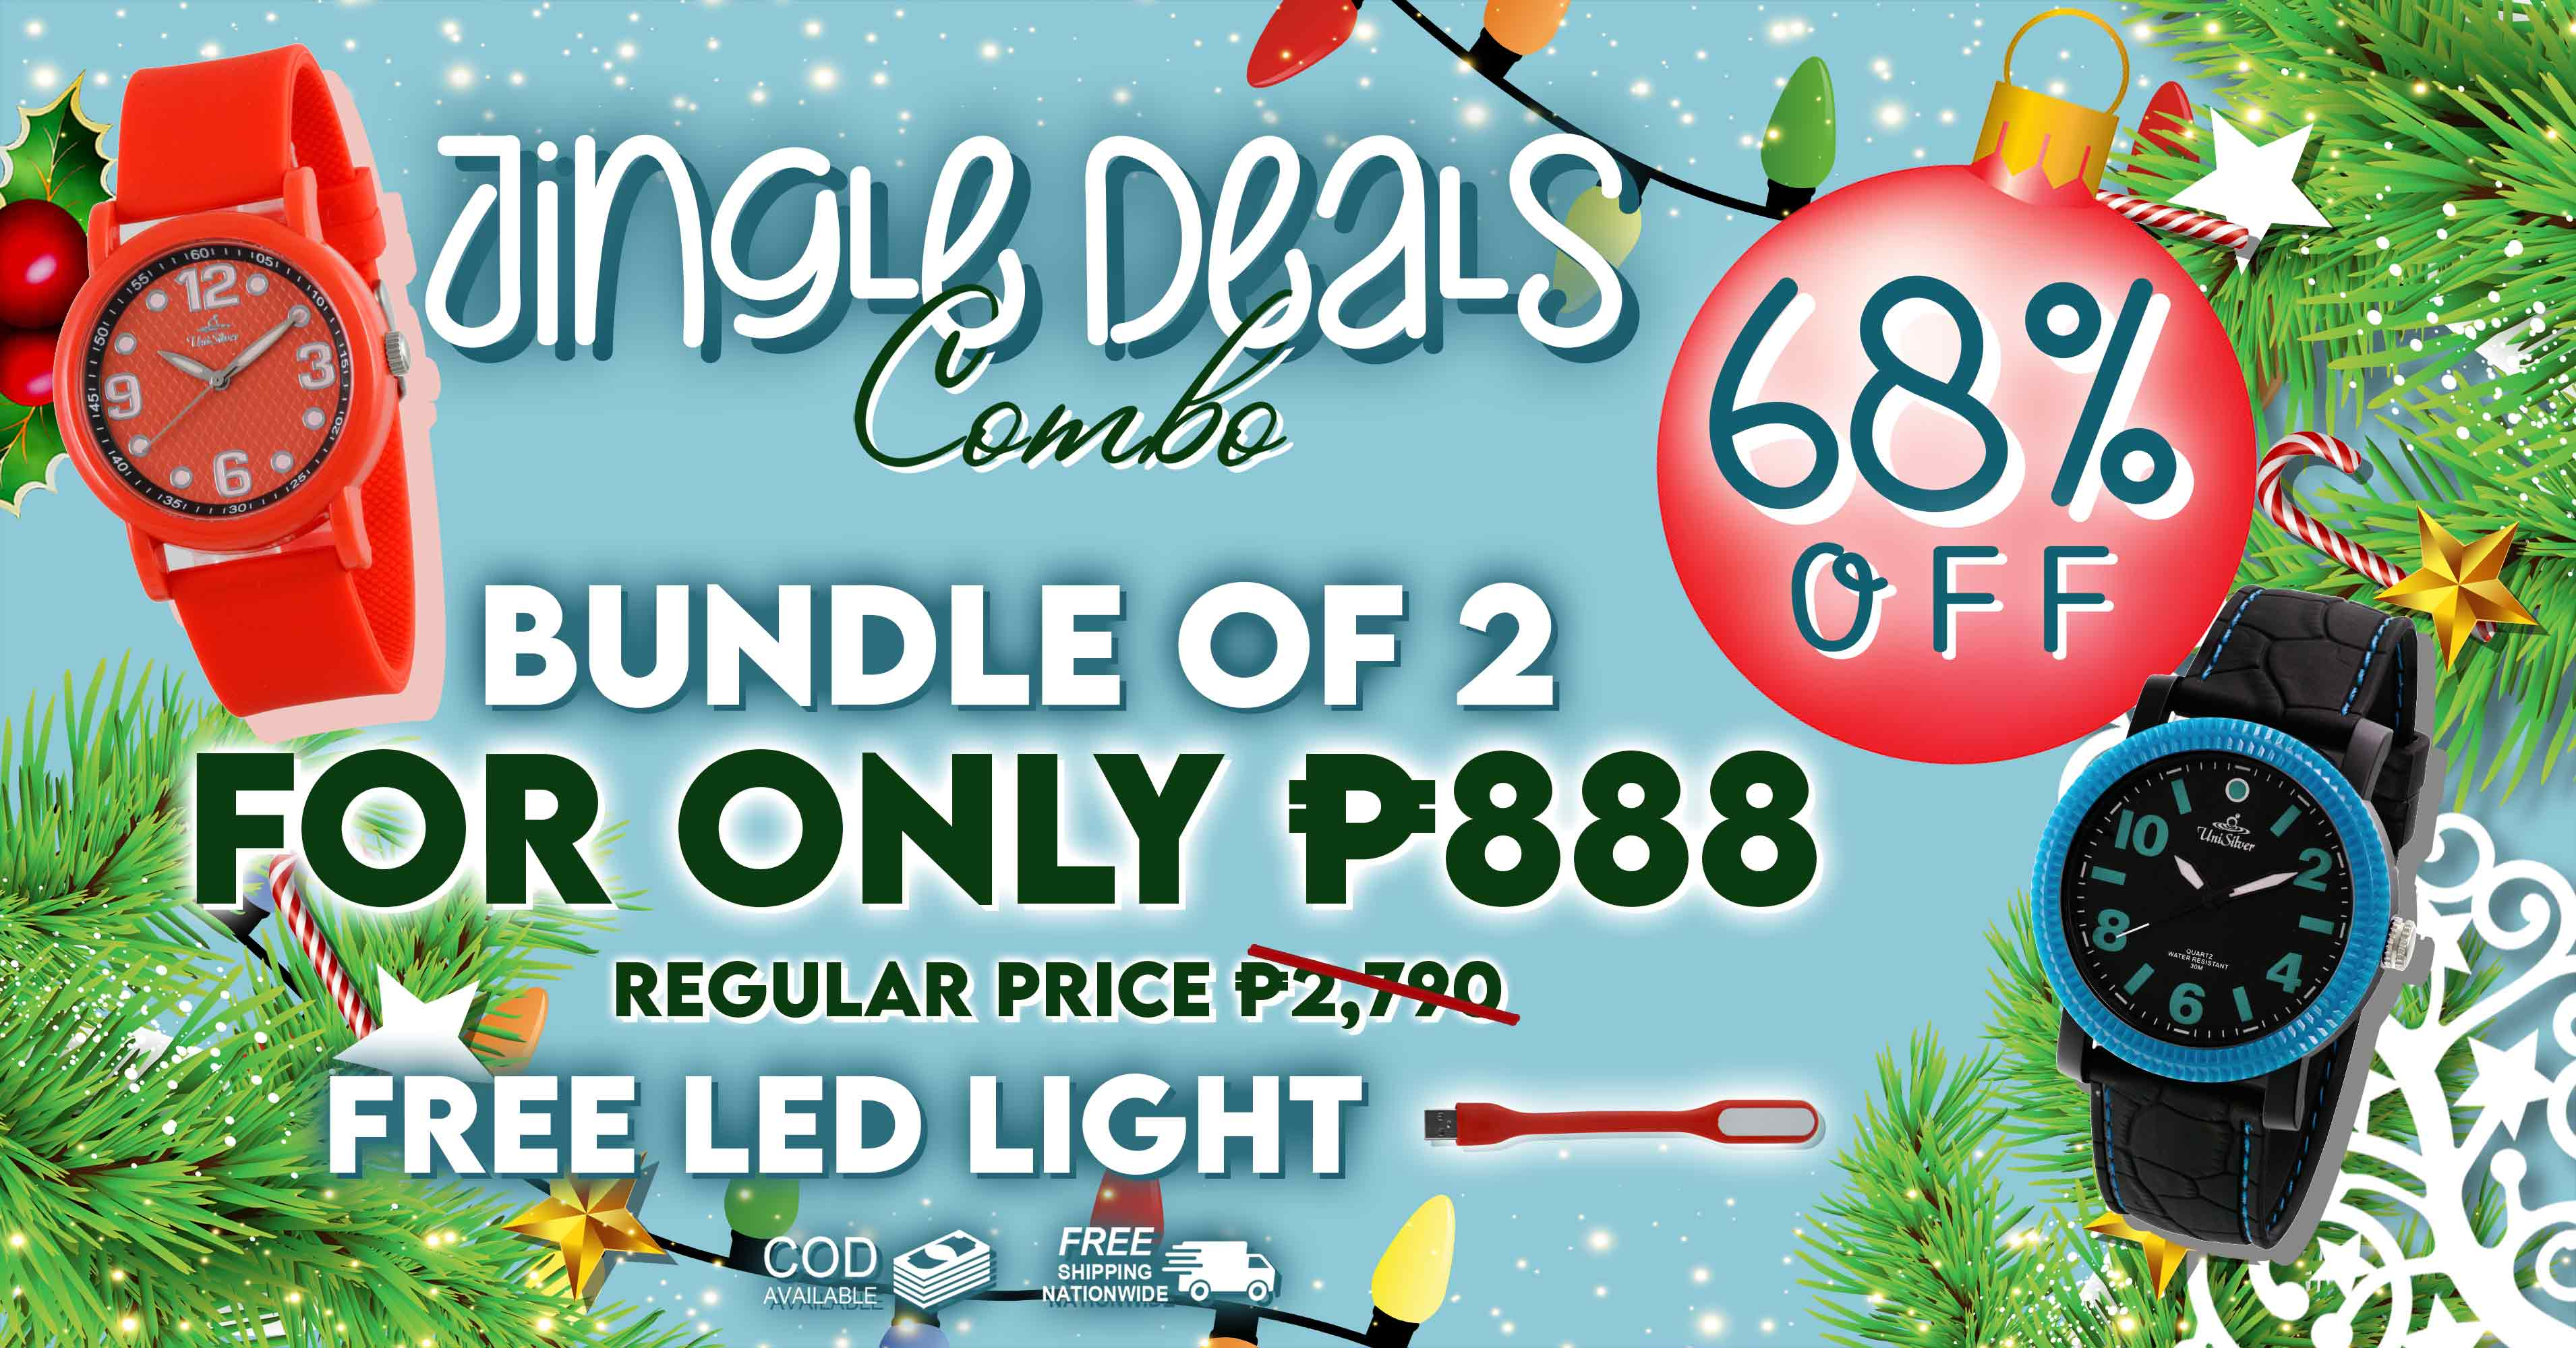 Oh, what fun it is this Christmas Season: Jingle Deals all the way with UniSilver TIME online.  Just pick any 2 watches for P888 only! That's 68% off the regular price of P2790  There are 19 designs to choose from!  Free USB LED  LIGHT.  Free shipping and cash on delivery option is available.  This promo is only available online  http://www.unisilvertime.com/ Hurry order now! >>> https://bit.ly/2M0UjQT